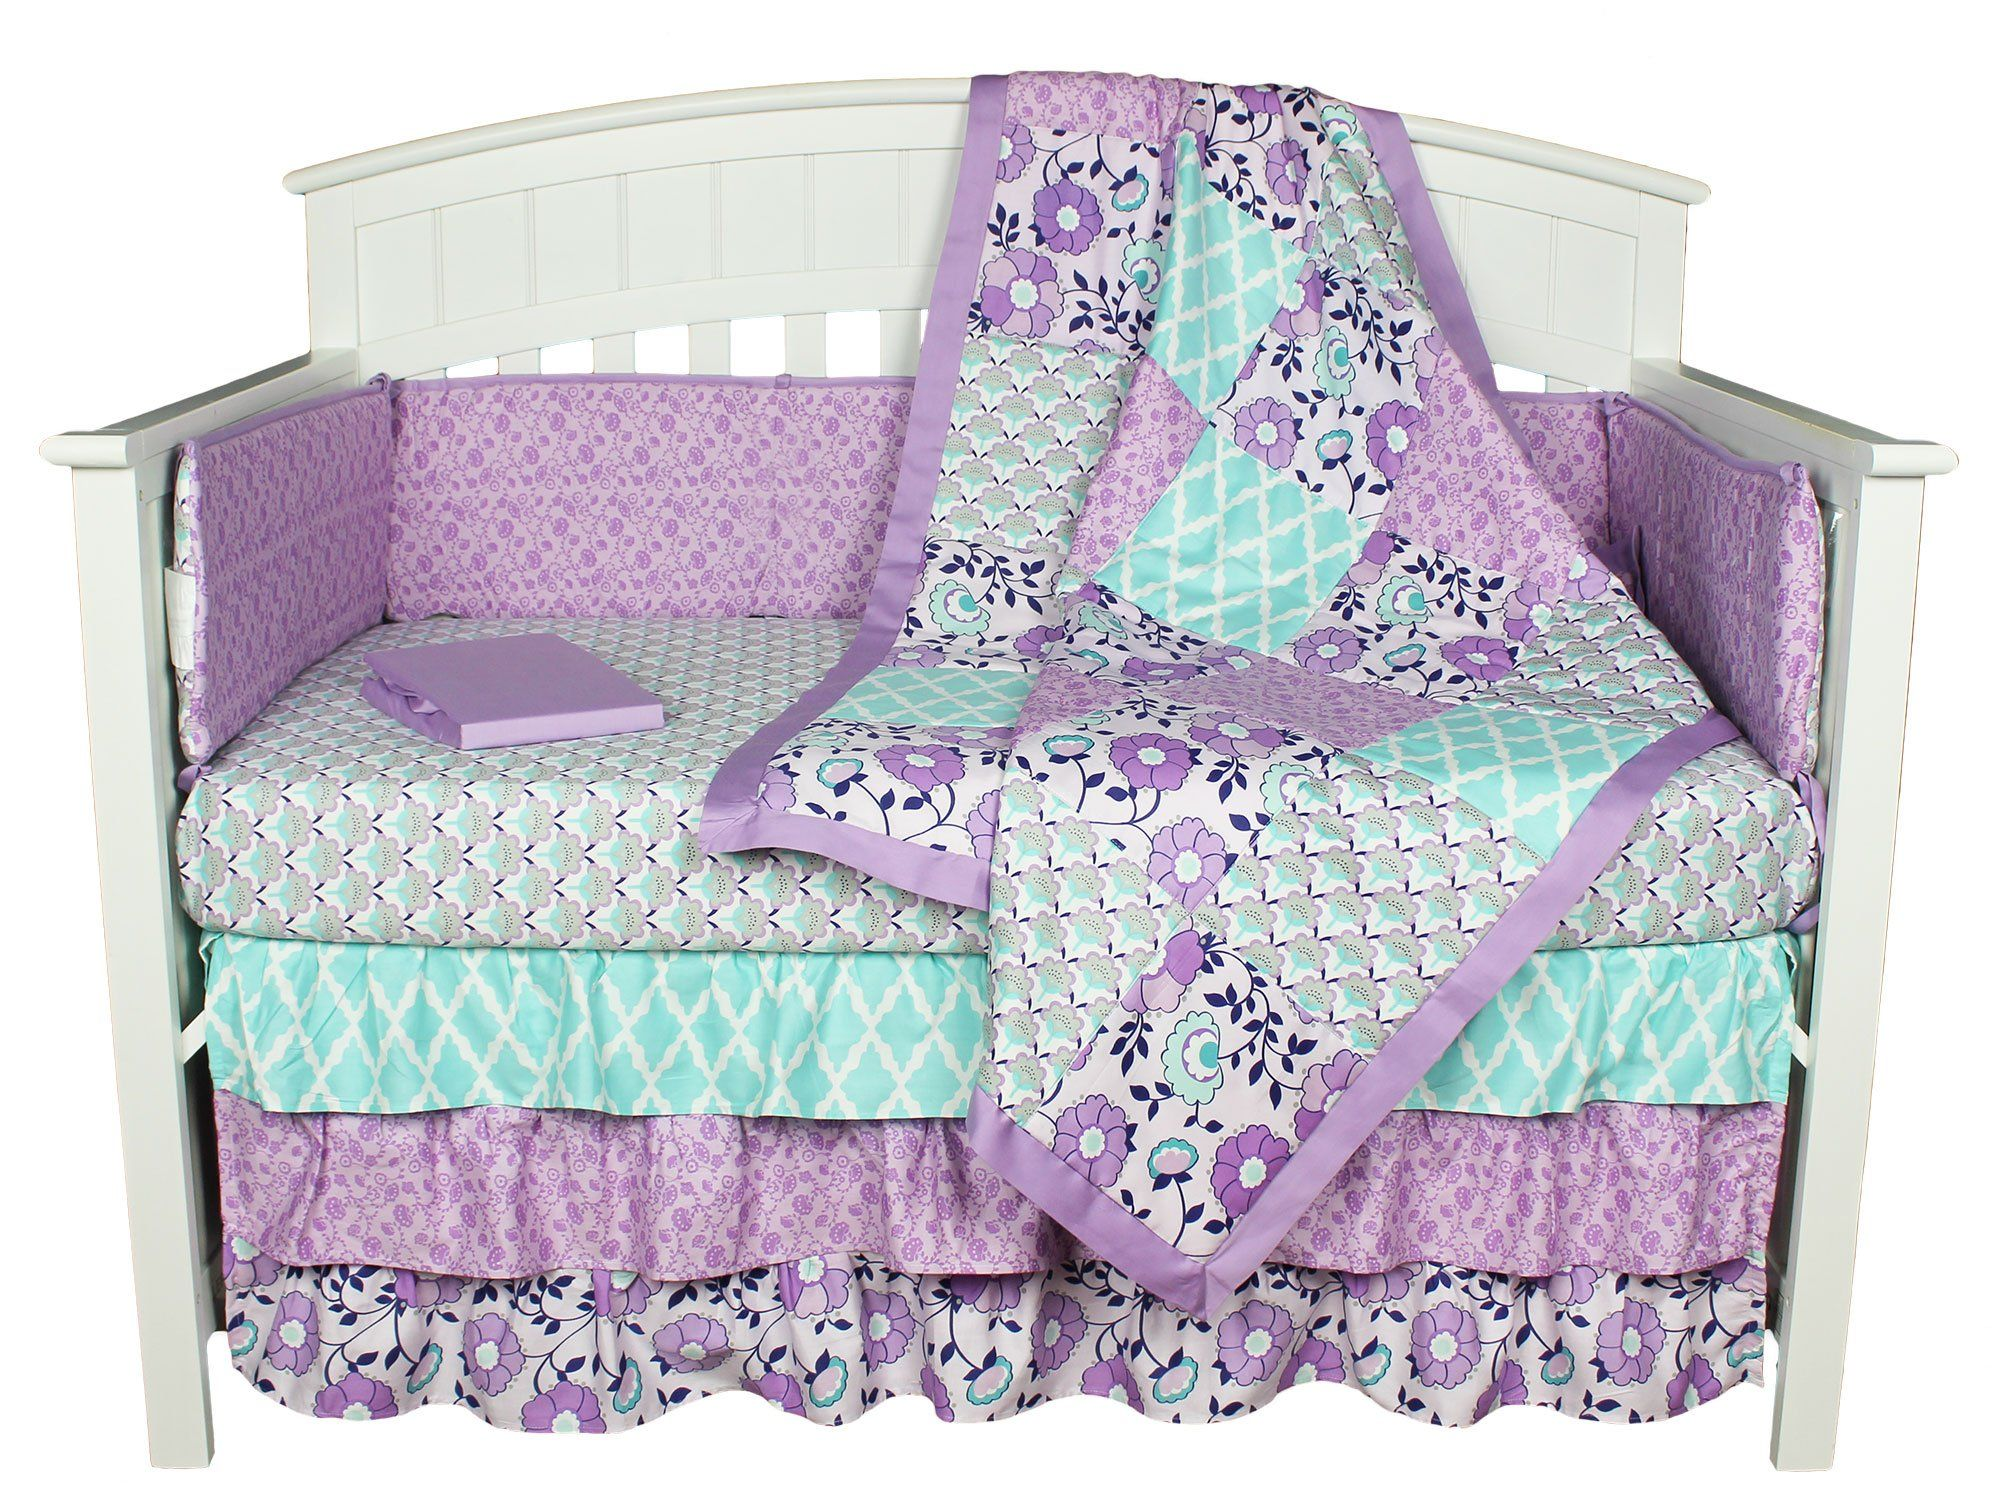 Baby bedding lamb theme sweet pea lamb baby bedding and nursery - Zoe Floral Lavender Purple 8 In 1 Crib Bedding Collection